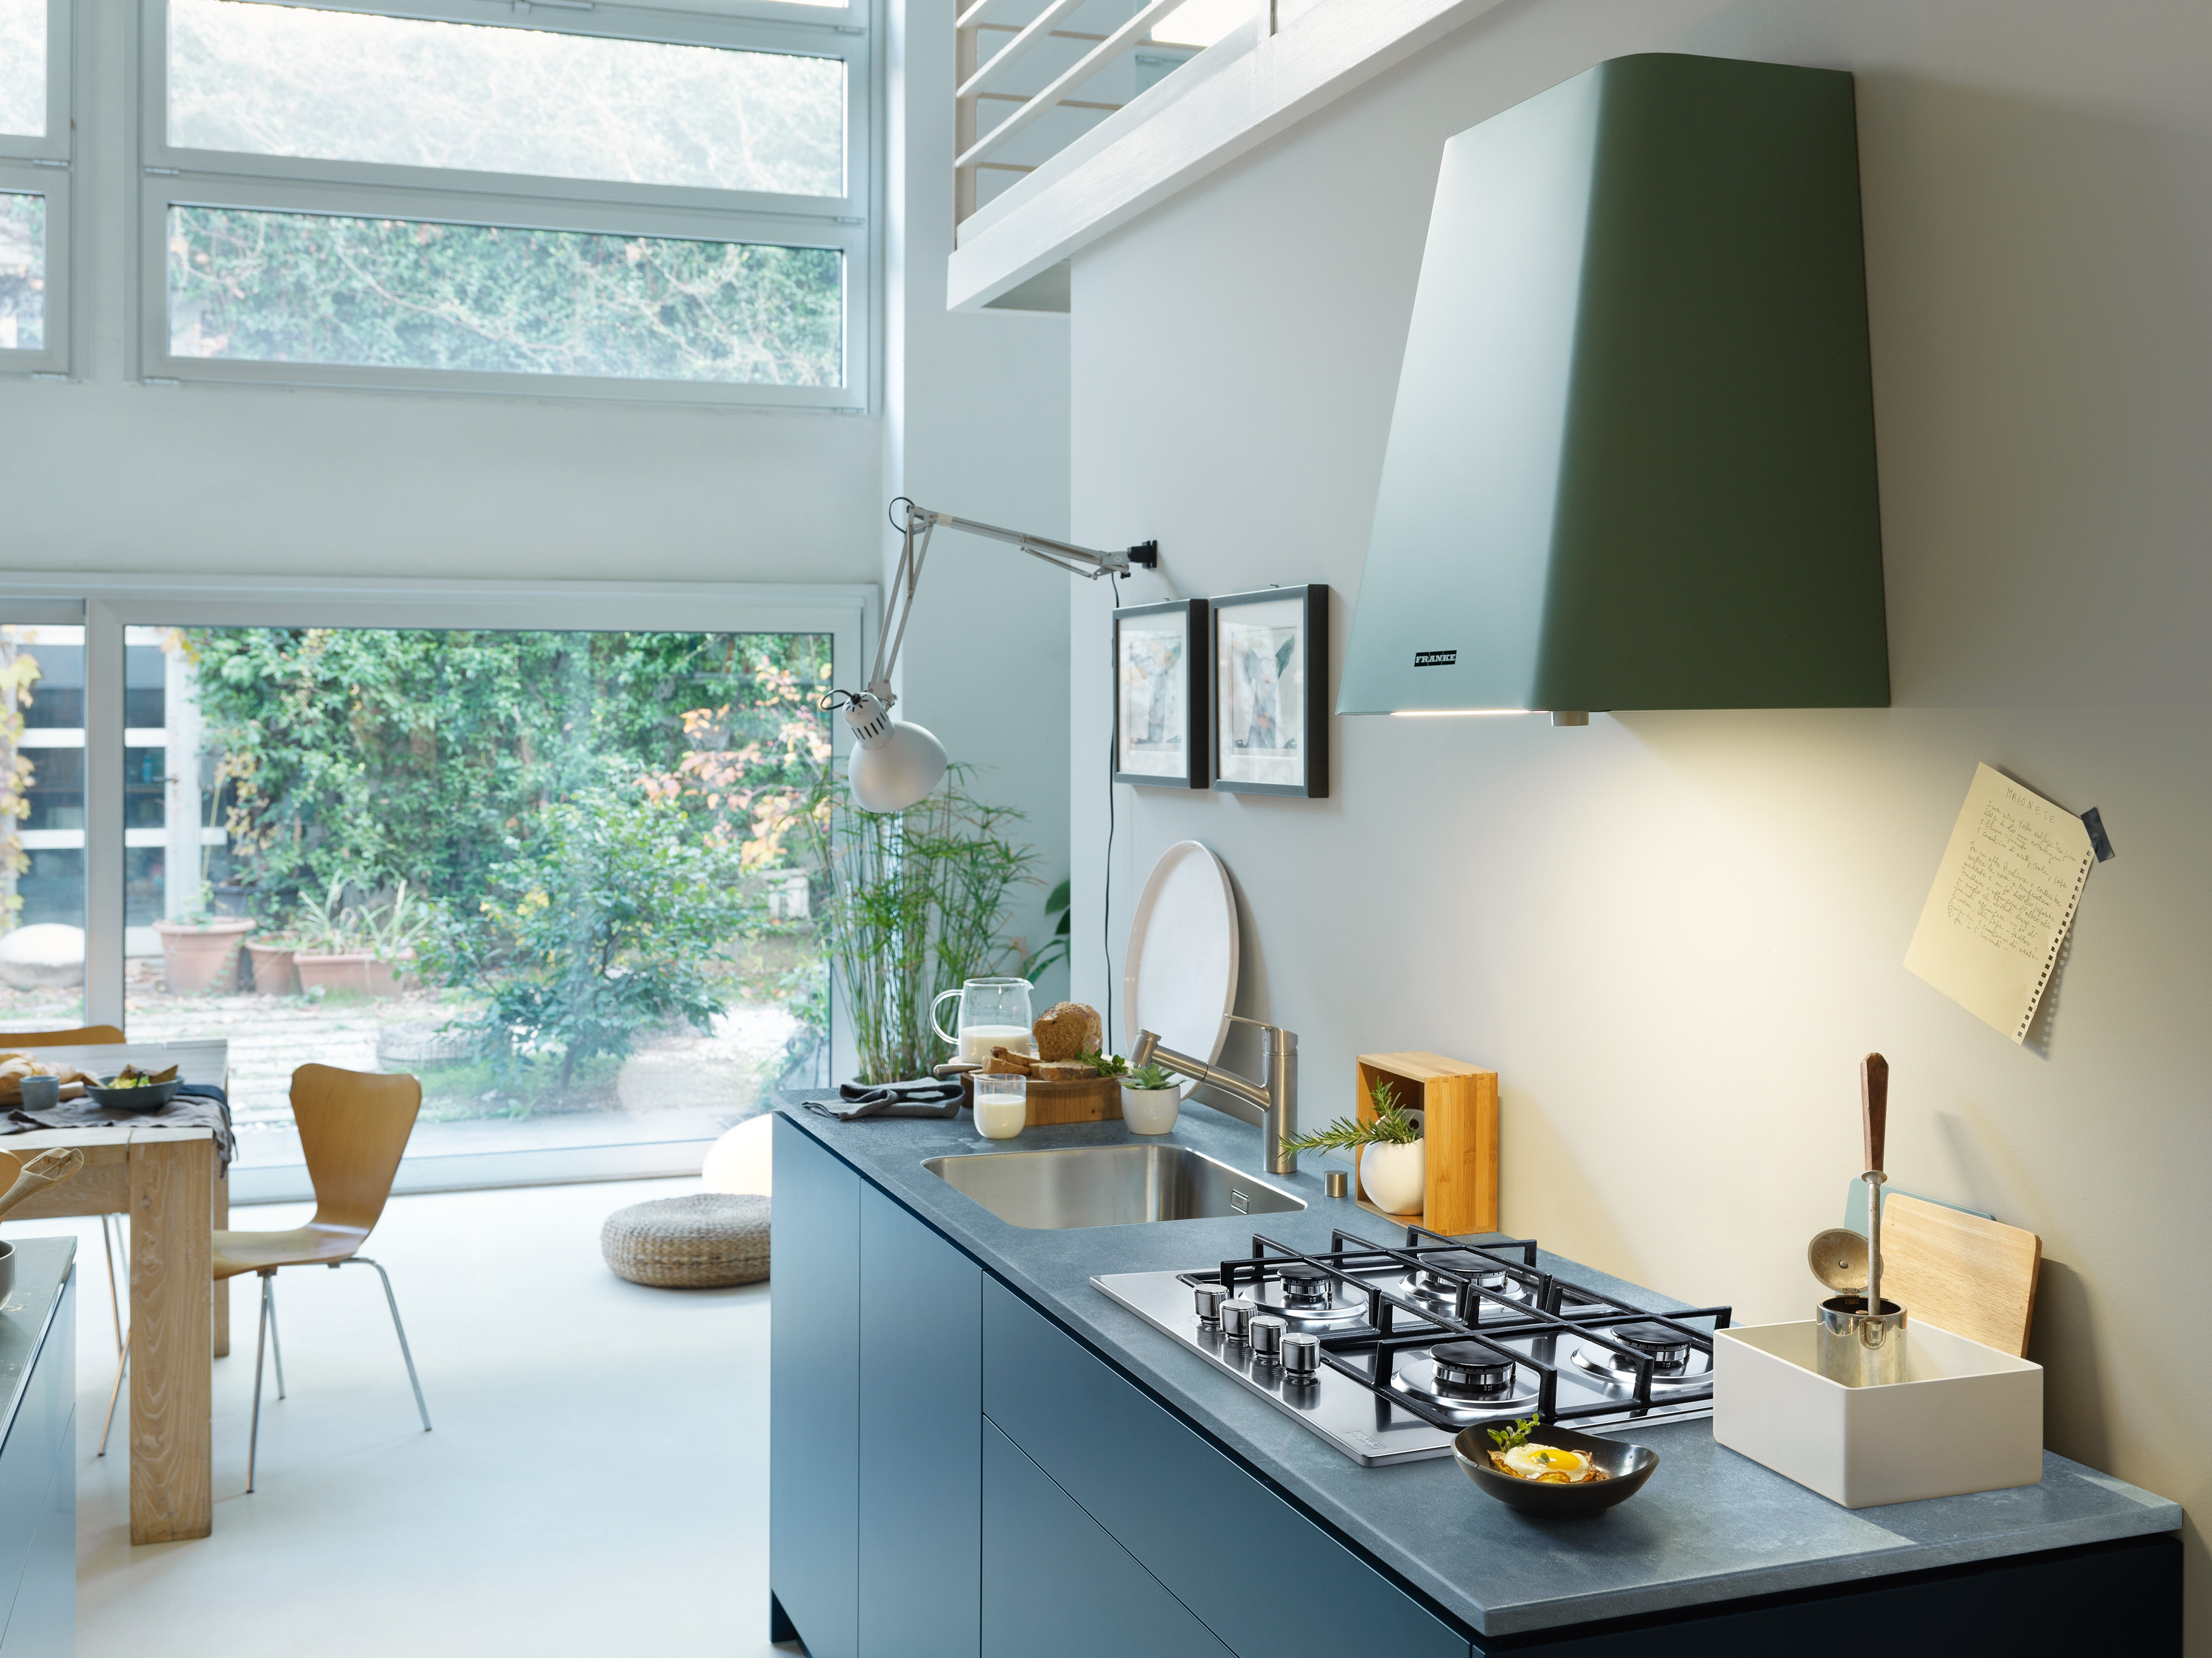 Cooker Hoods Just Got Attitude These 6 Colourful Finishes Are 2020 S Hottest Kitchen Revamp Trend Real Homes